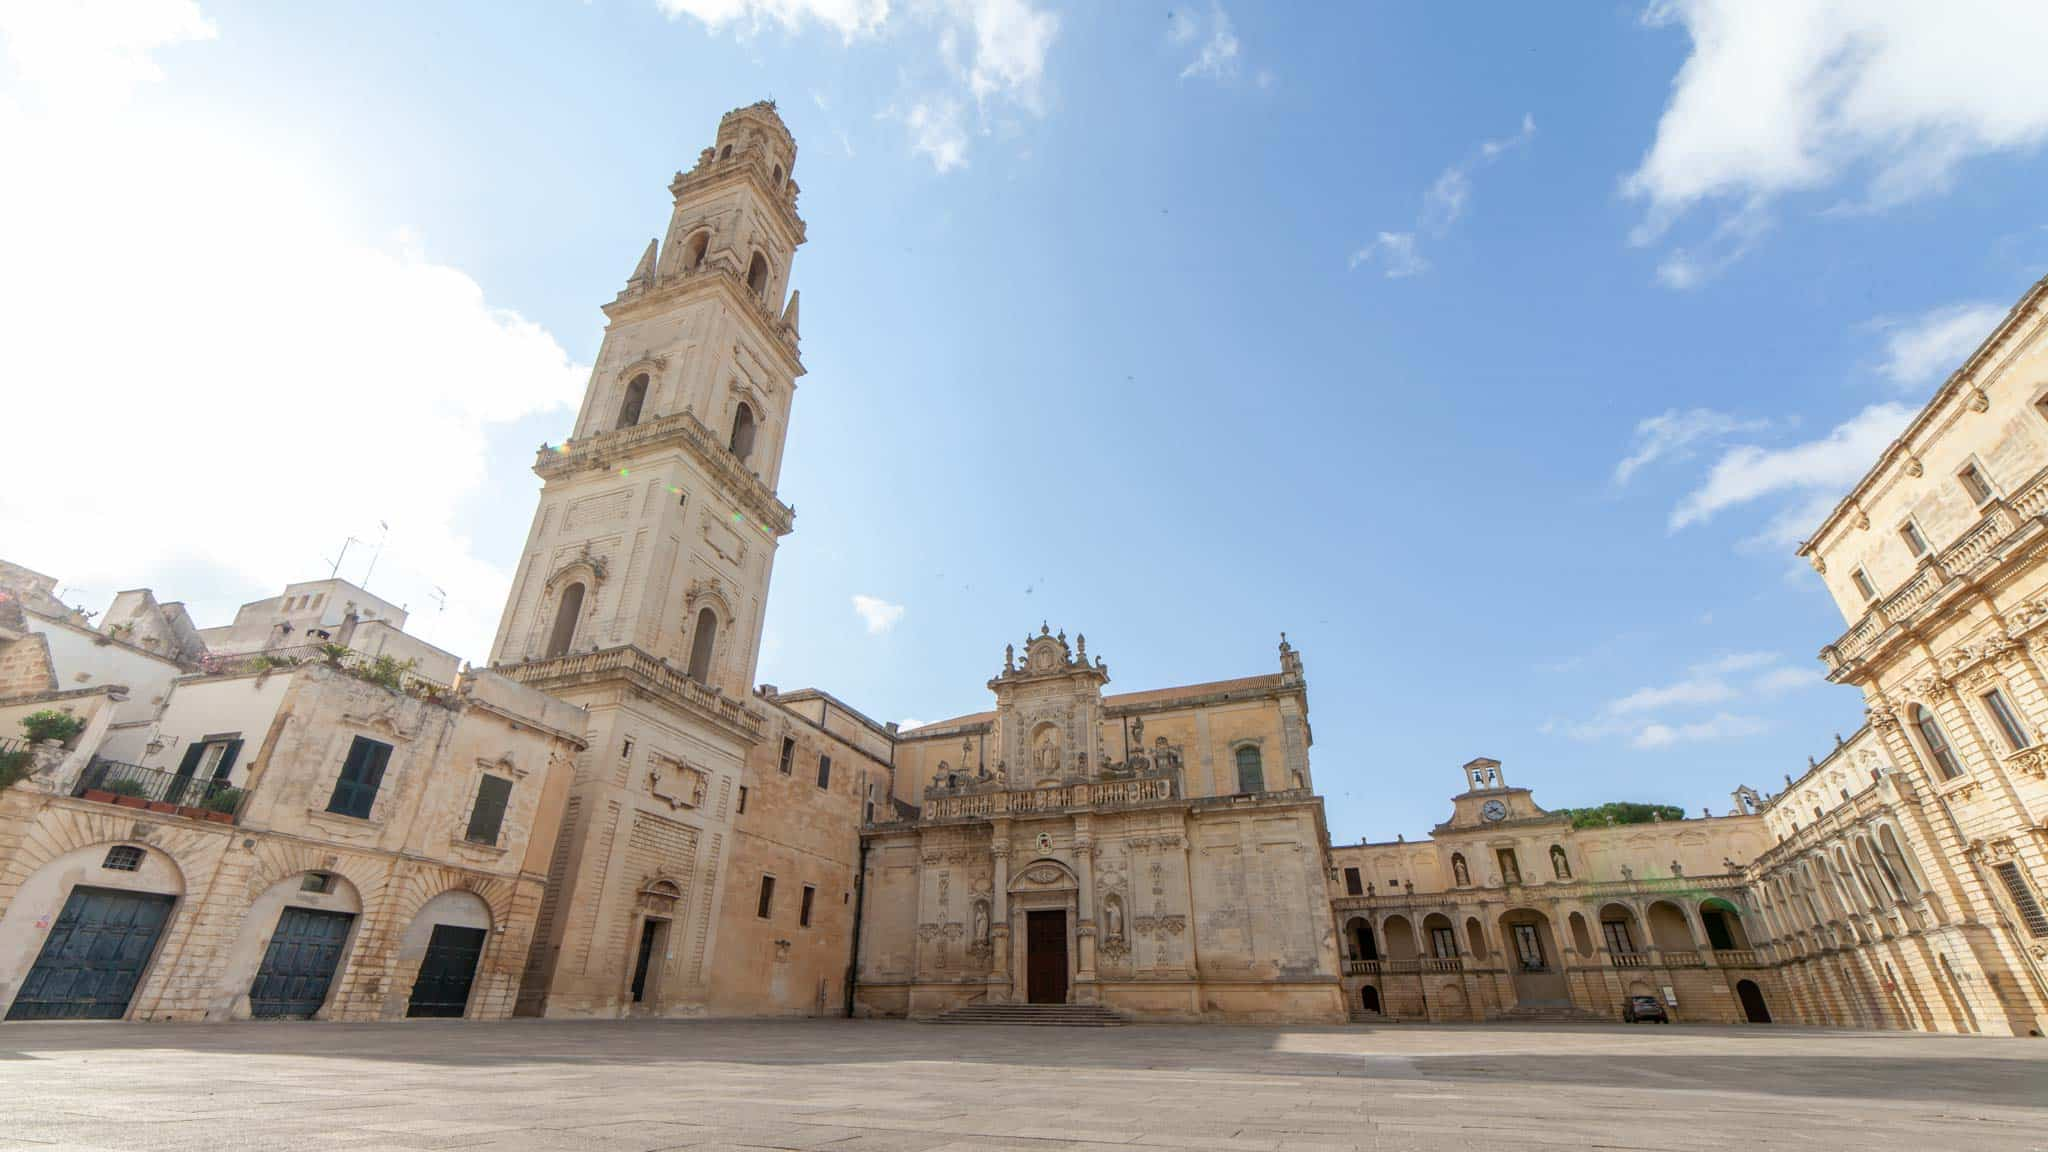 The main cathedral and tower of Lecce early morning